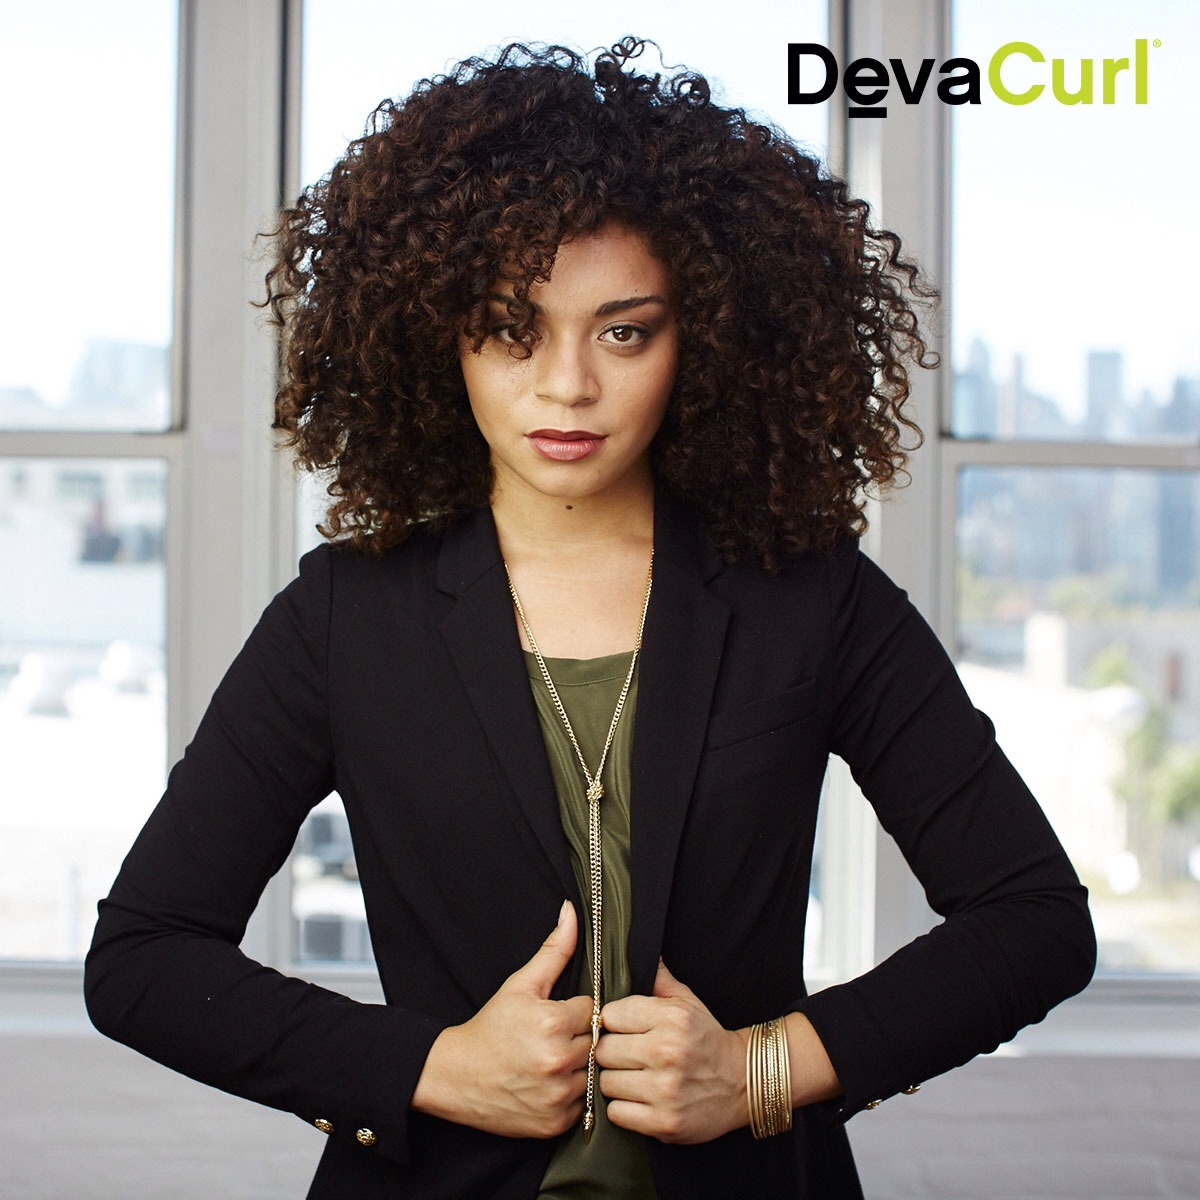 DevaCurl website hair guides and styling advice.